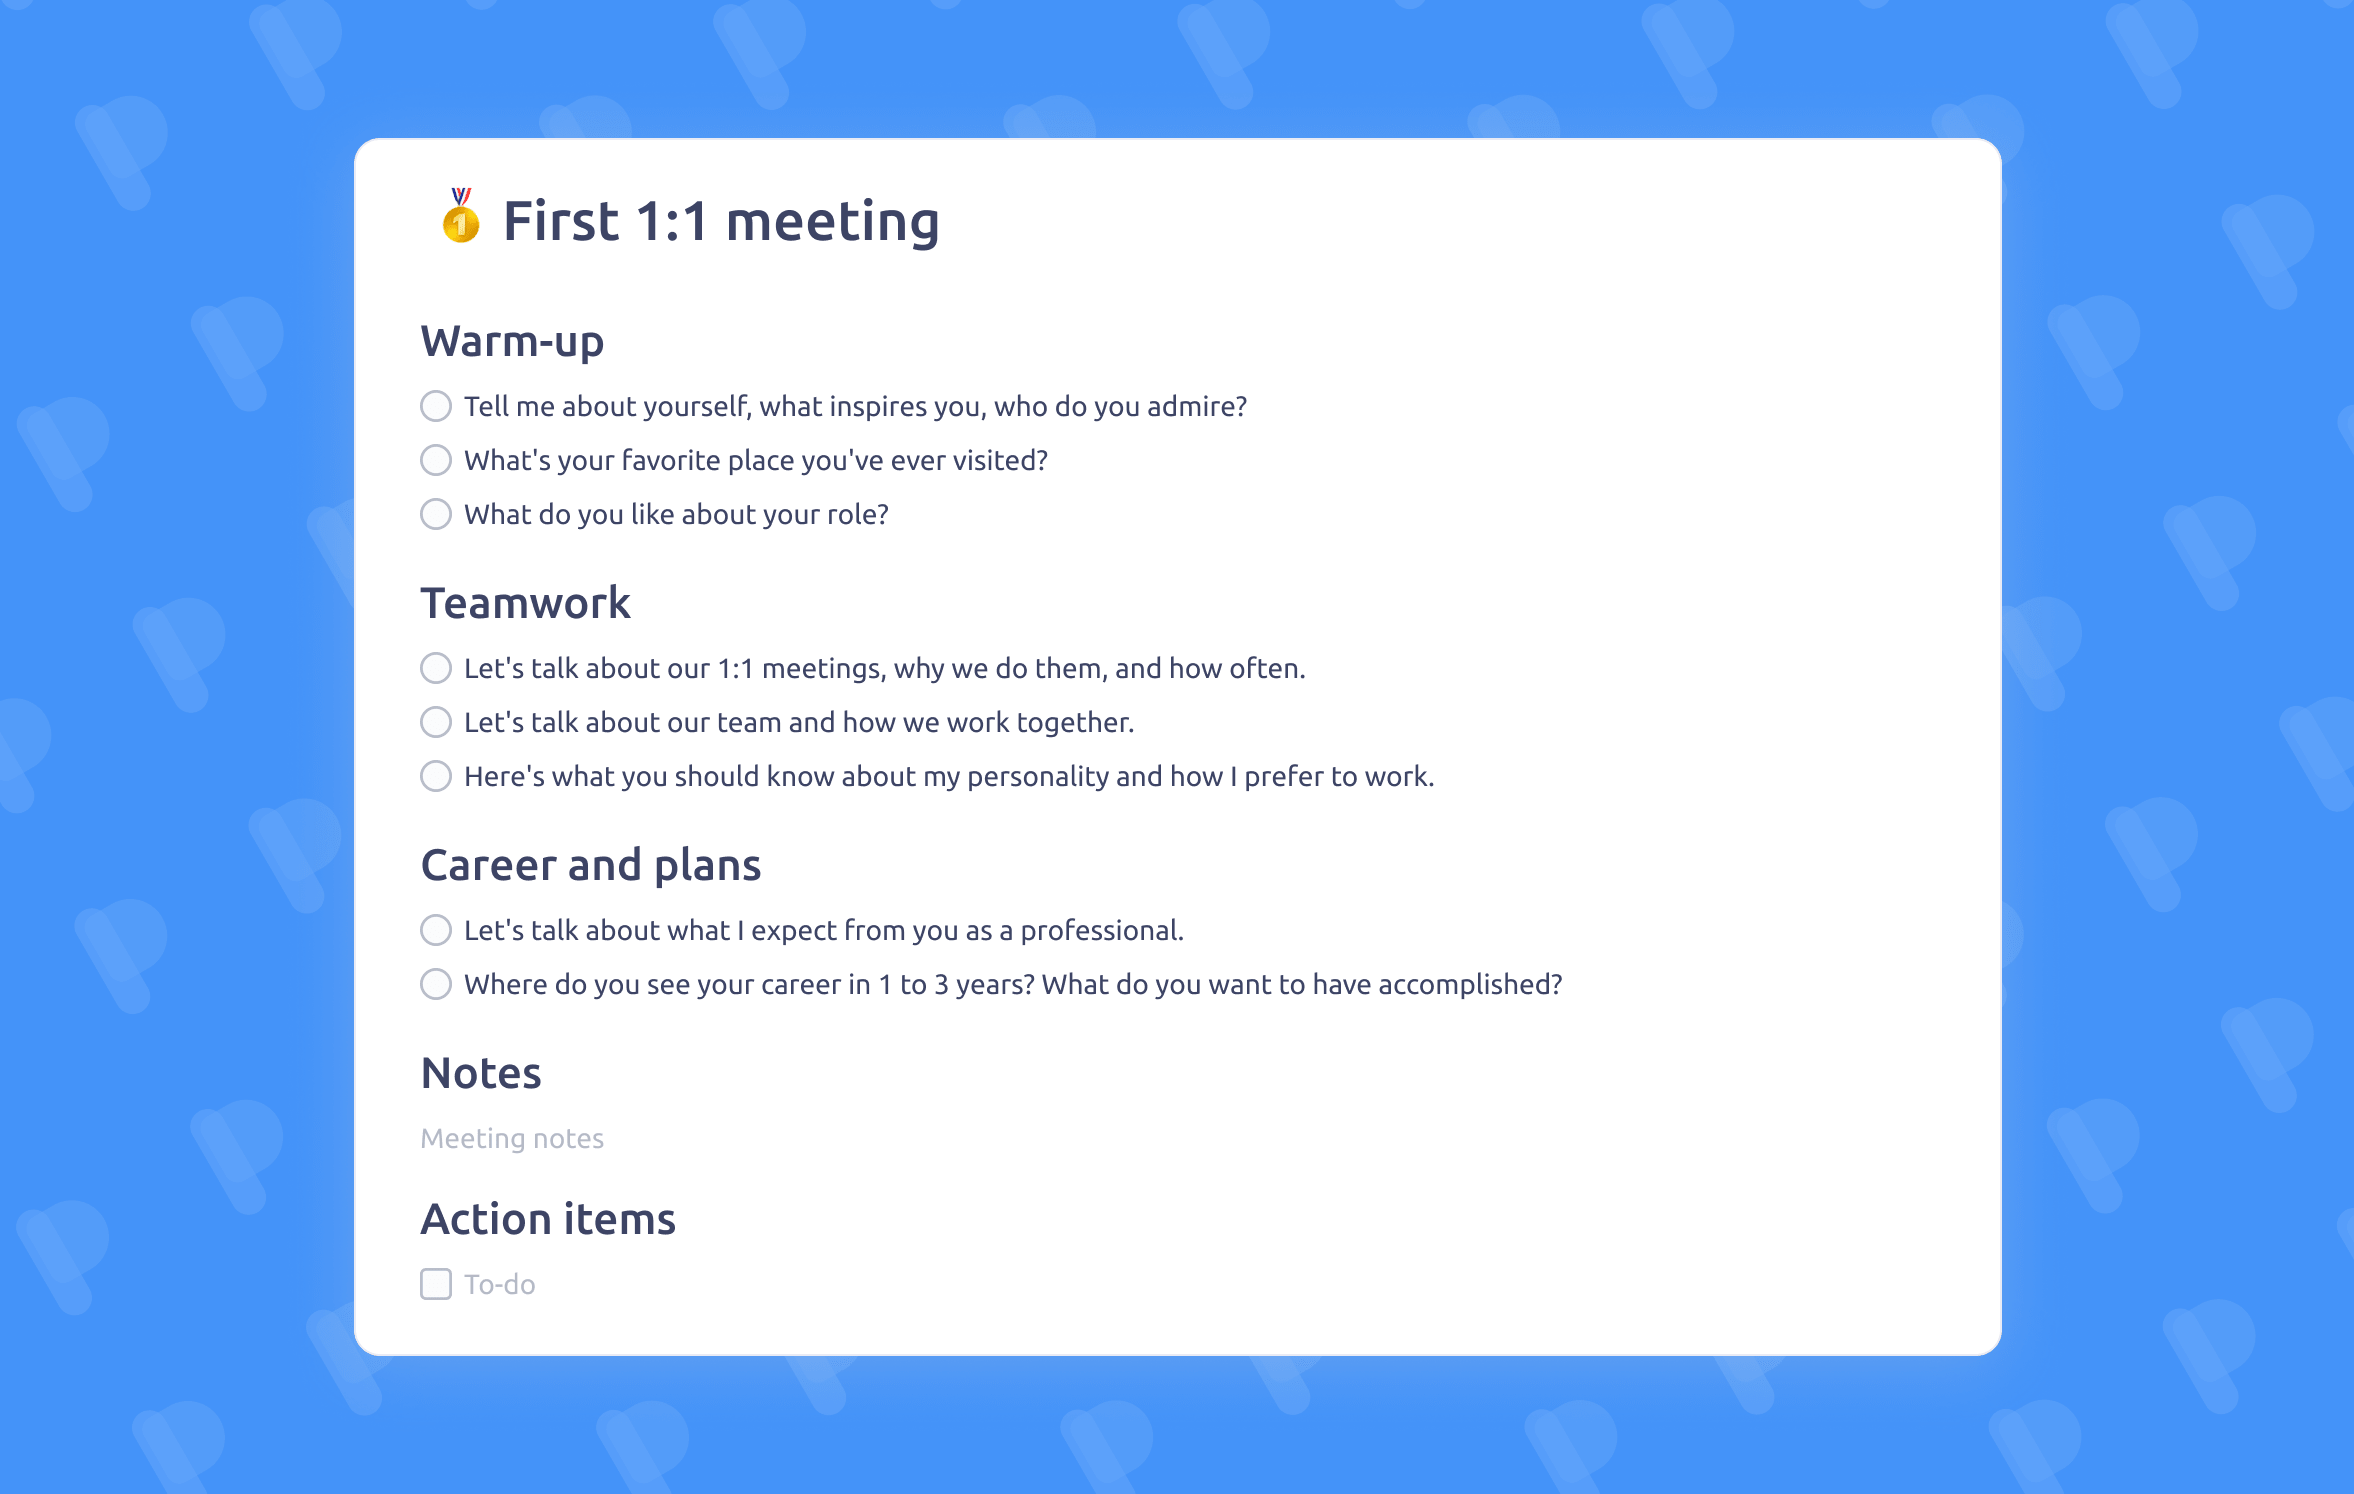 First One-on-One meeting template